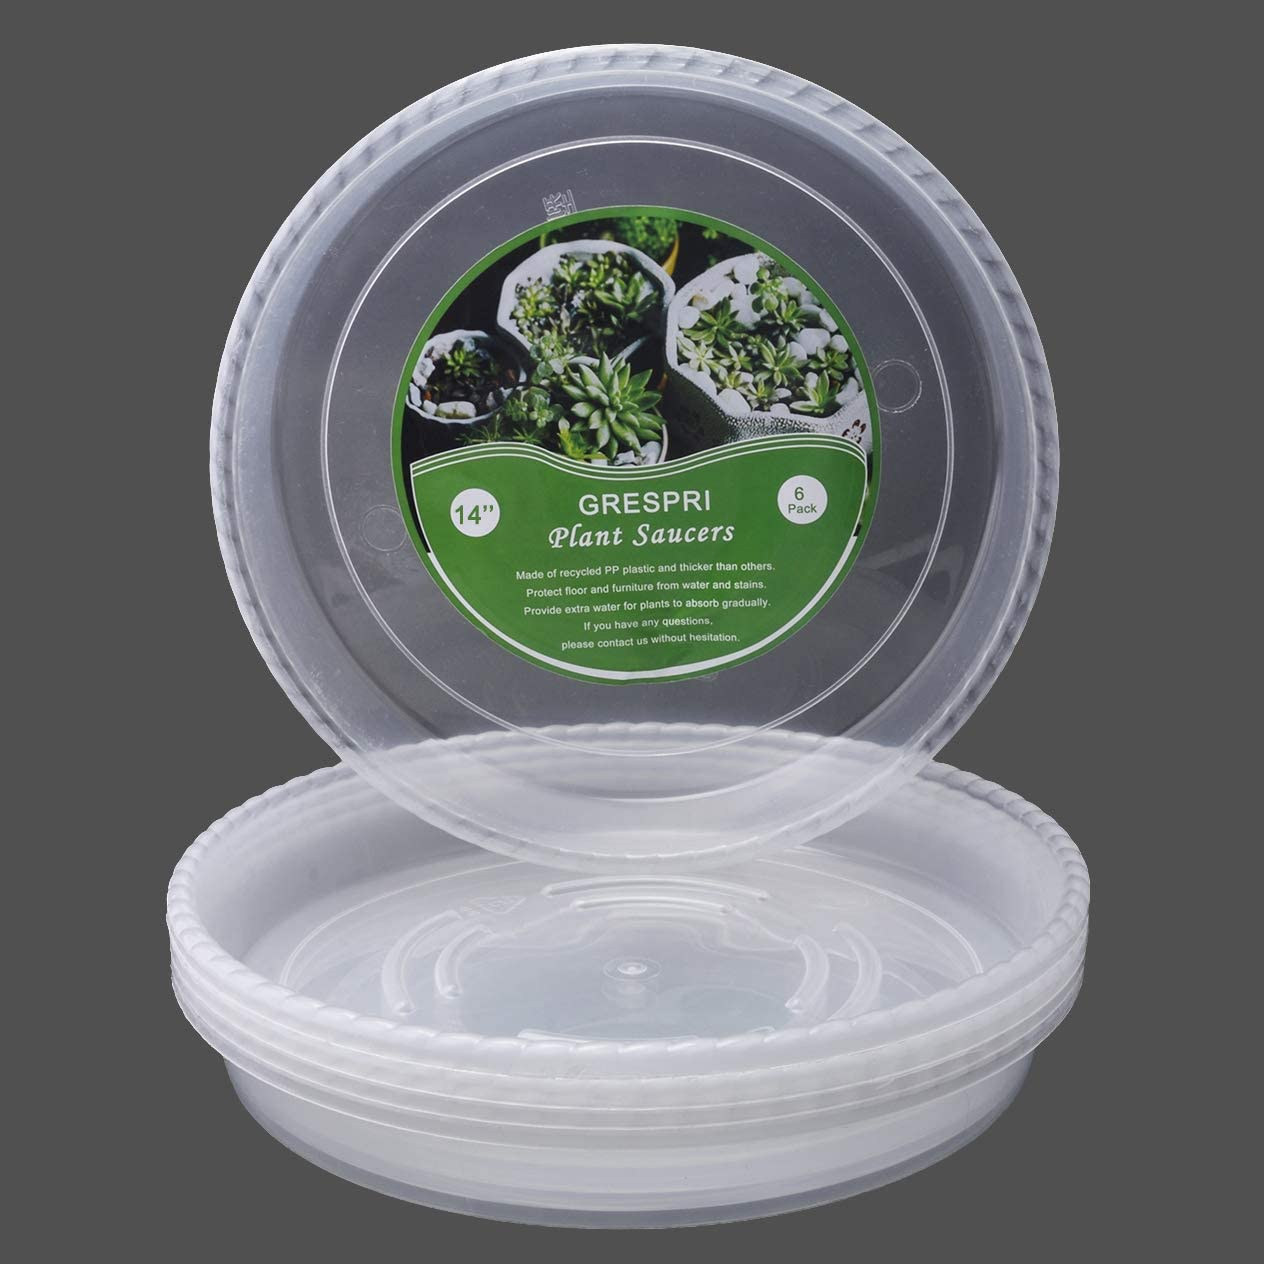 QDBNW 5 Pack of 8 inch Plant Saucer Clear Durable Sturdy Drip Trays for Indoor and Outdoor Flower Plant Container Saucers